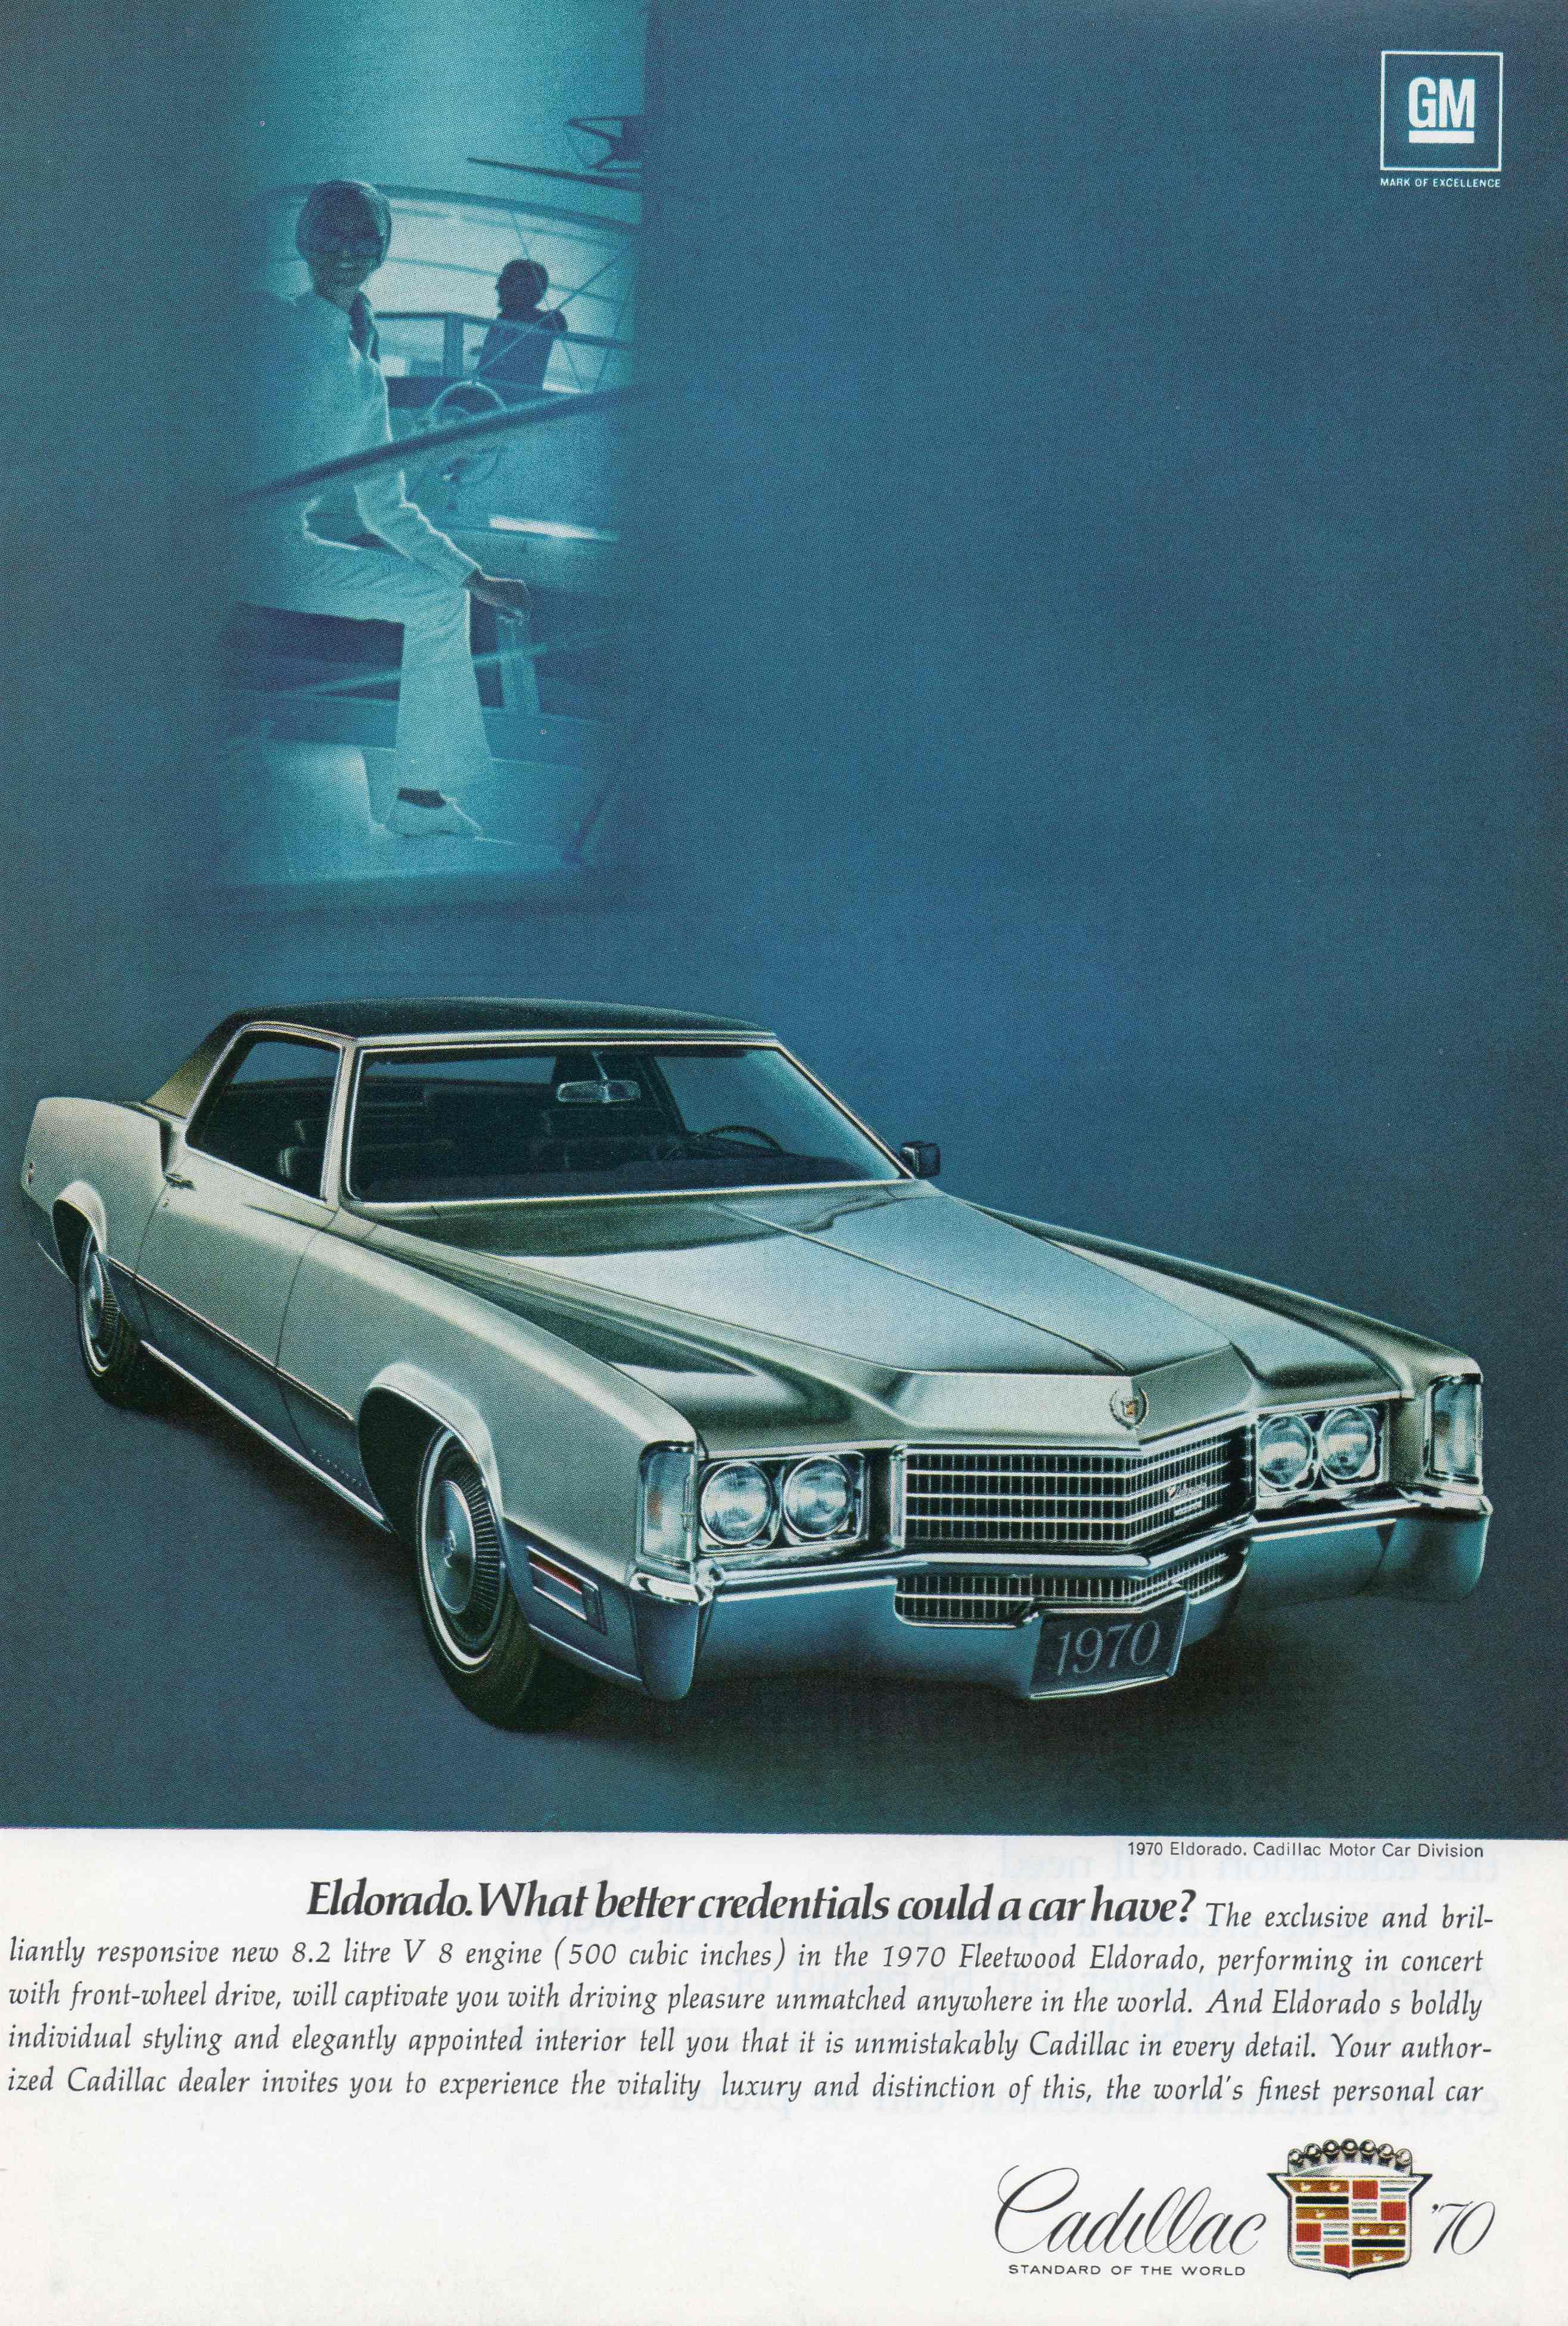 96f808d665d716fd58204ed116d00607 Cool Review About 1968 Cadillac